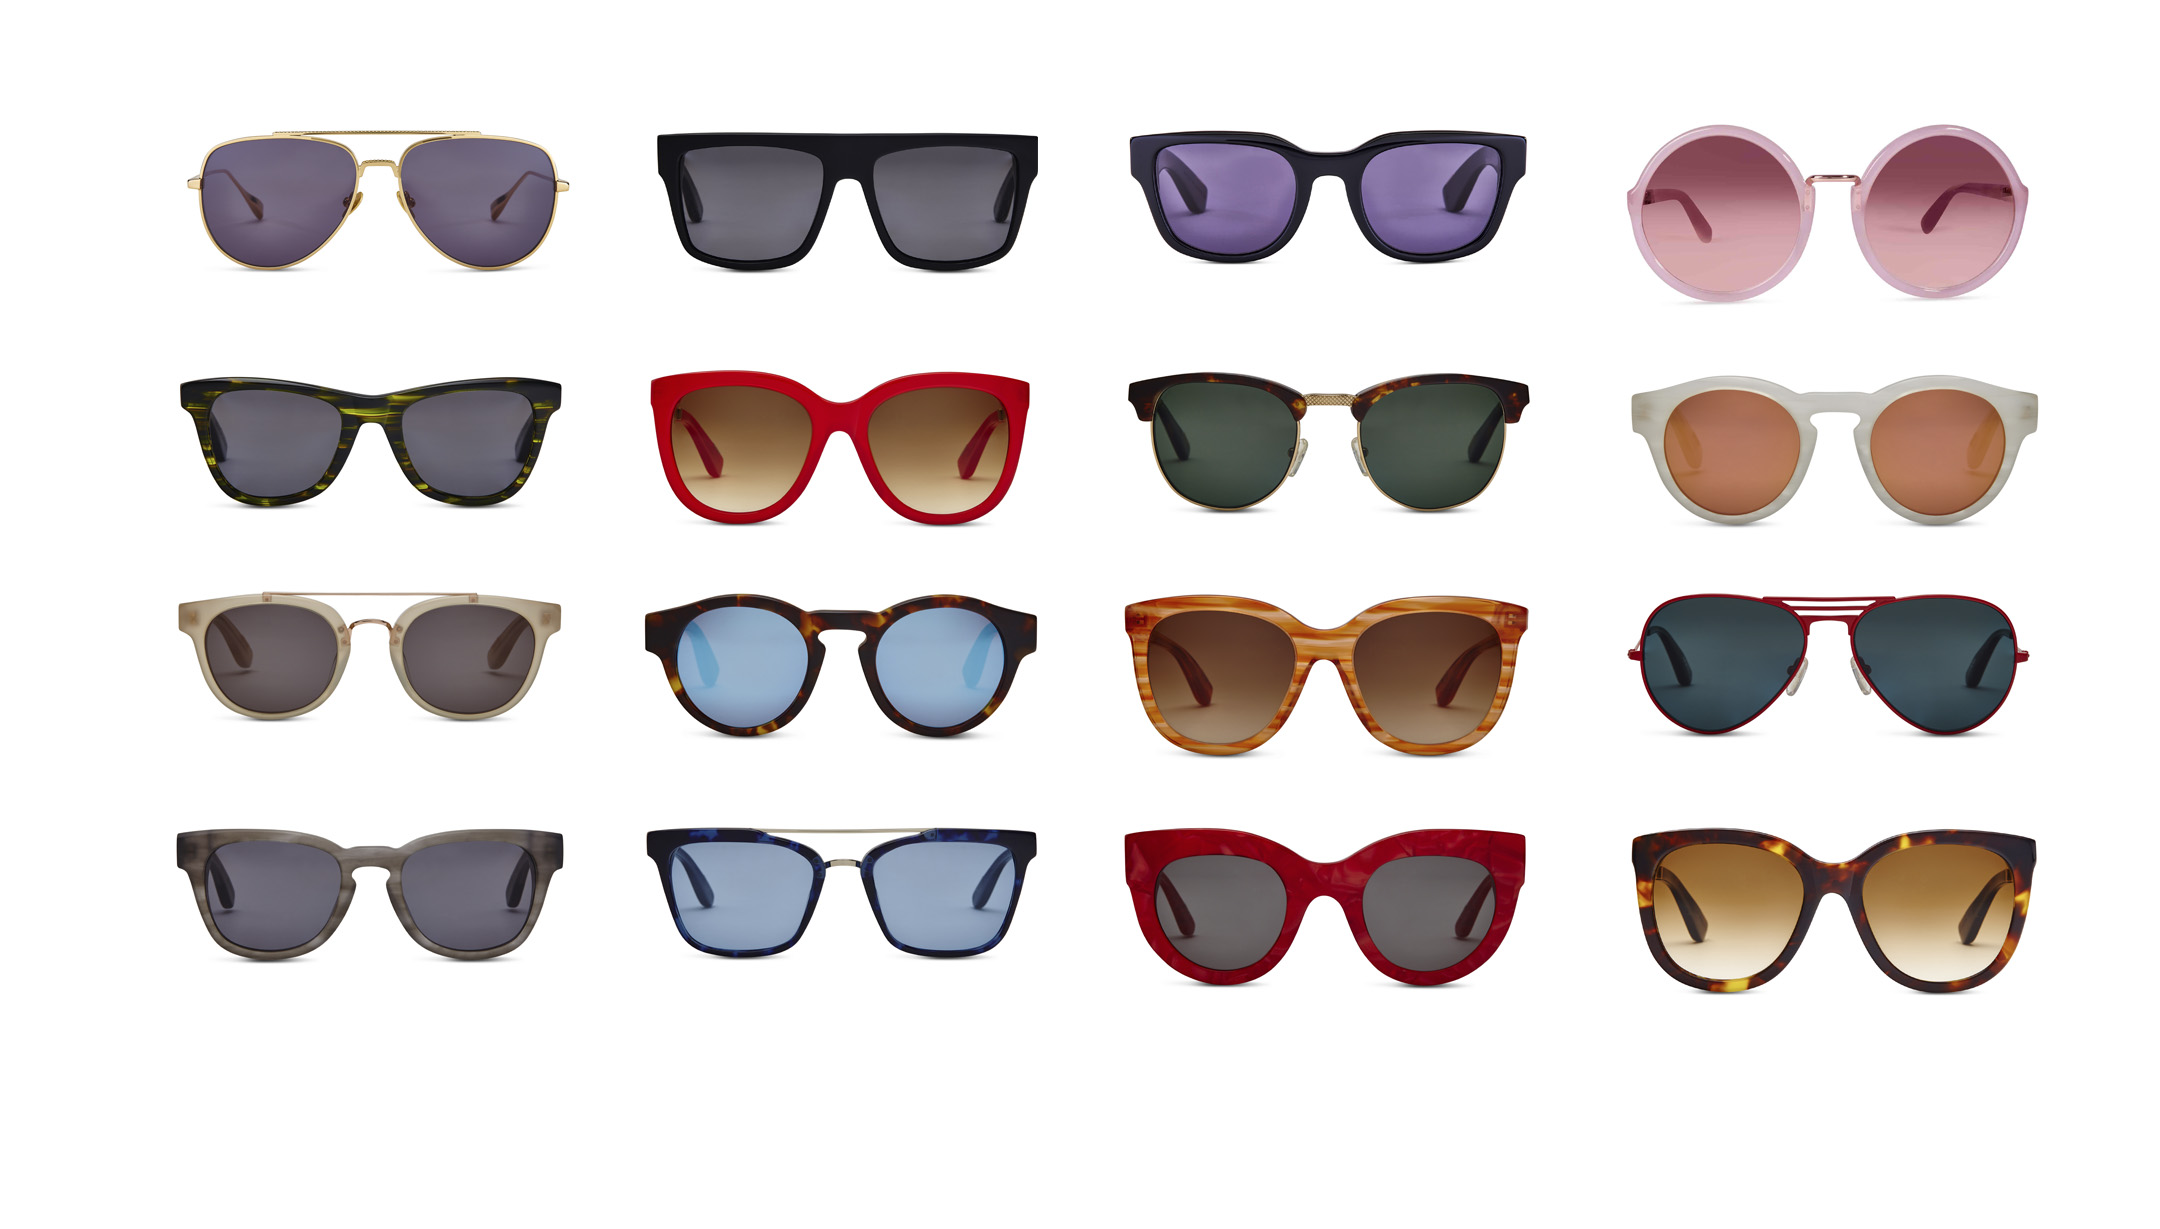 Eyewear Layout-2.jpg